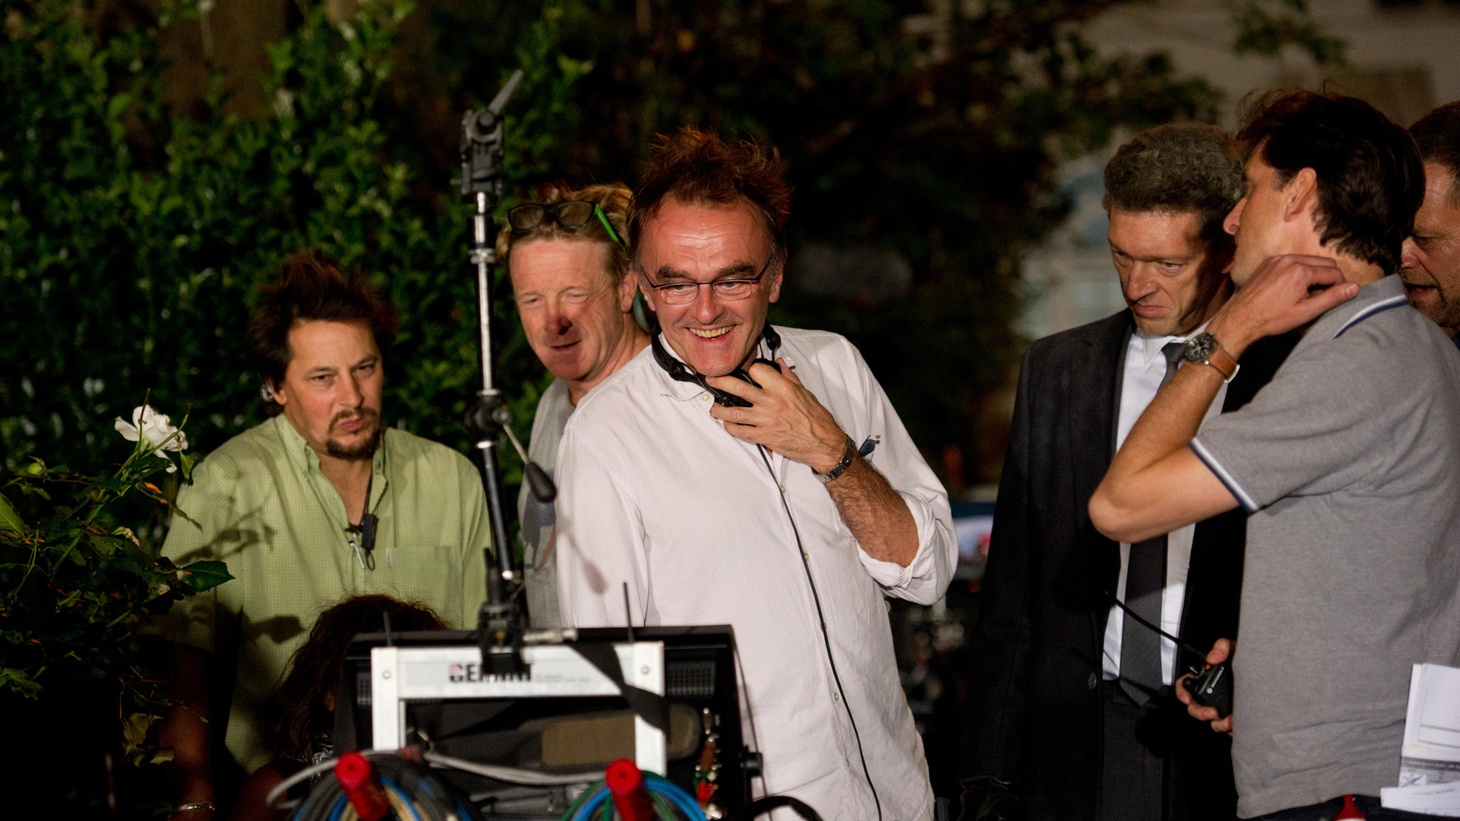 """Danny Boyle directs his new film """"Trance"""" while also creating the London Olympics Opening Ceremony."""